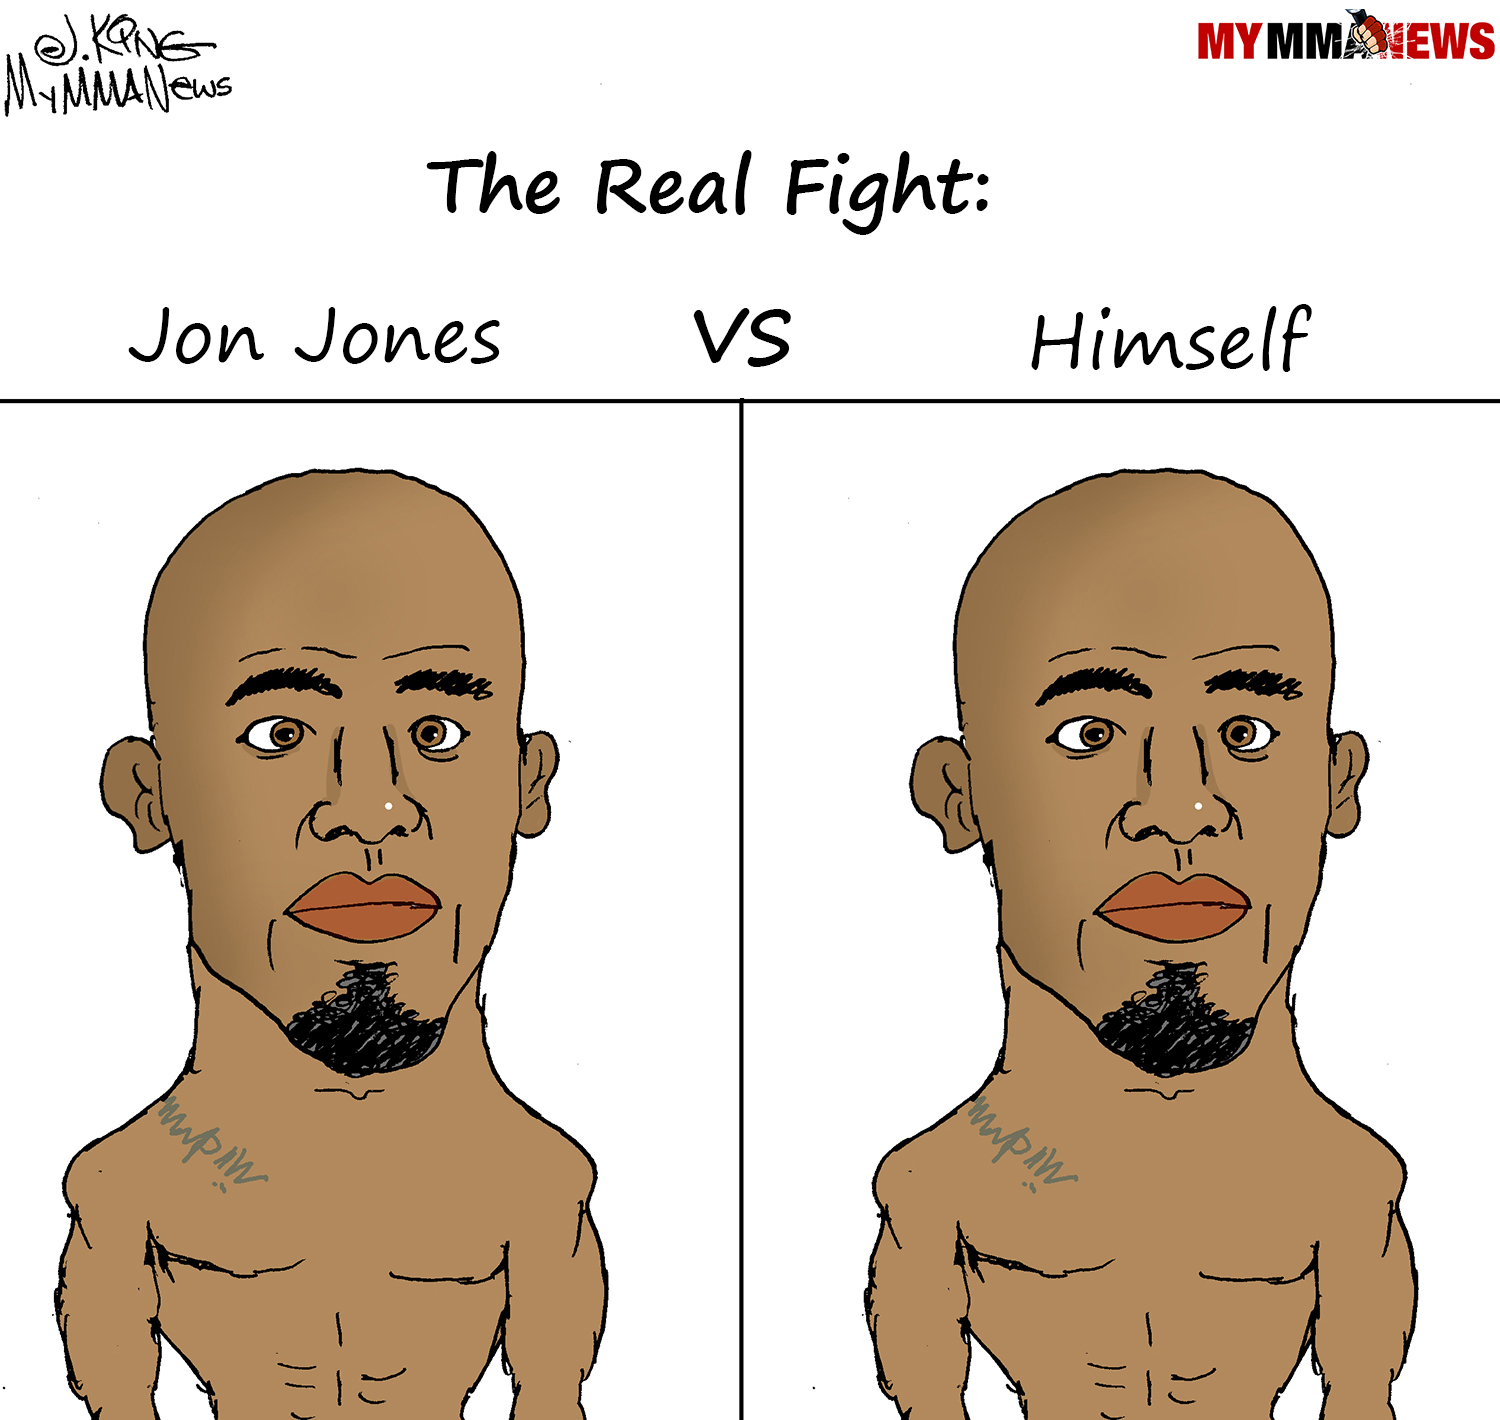 Jon Jones, toughest opponent